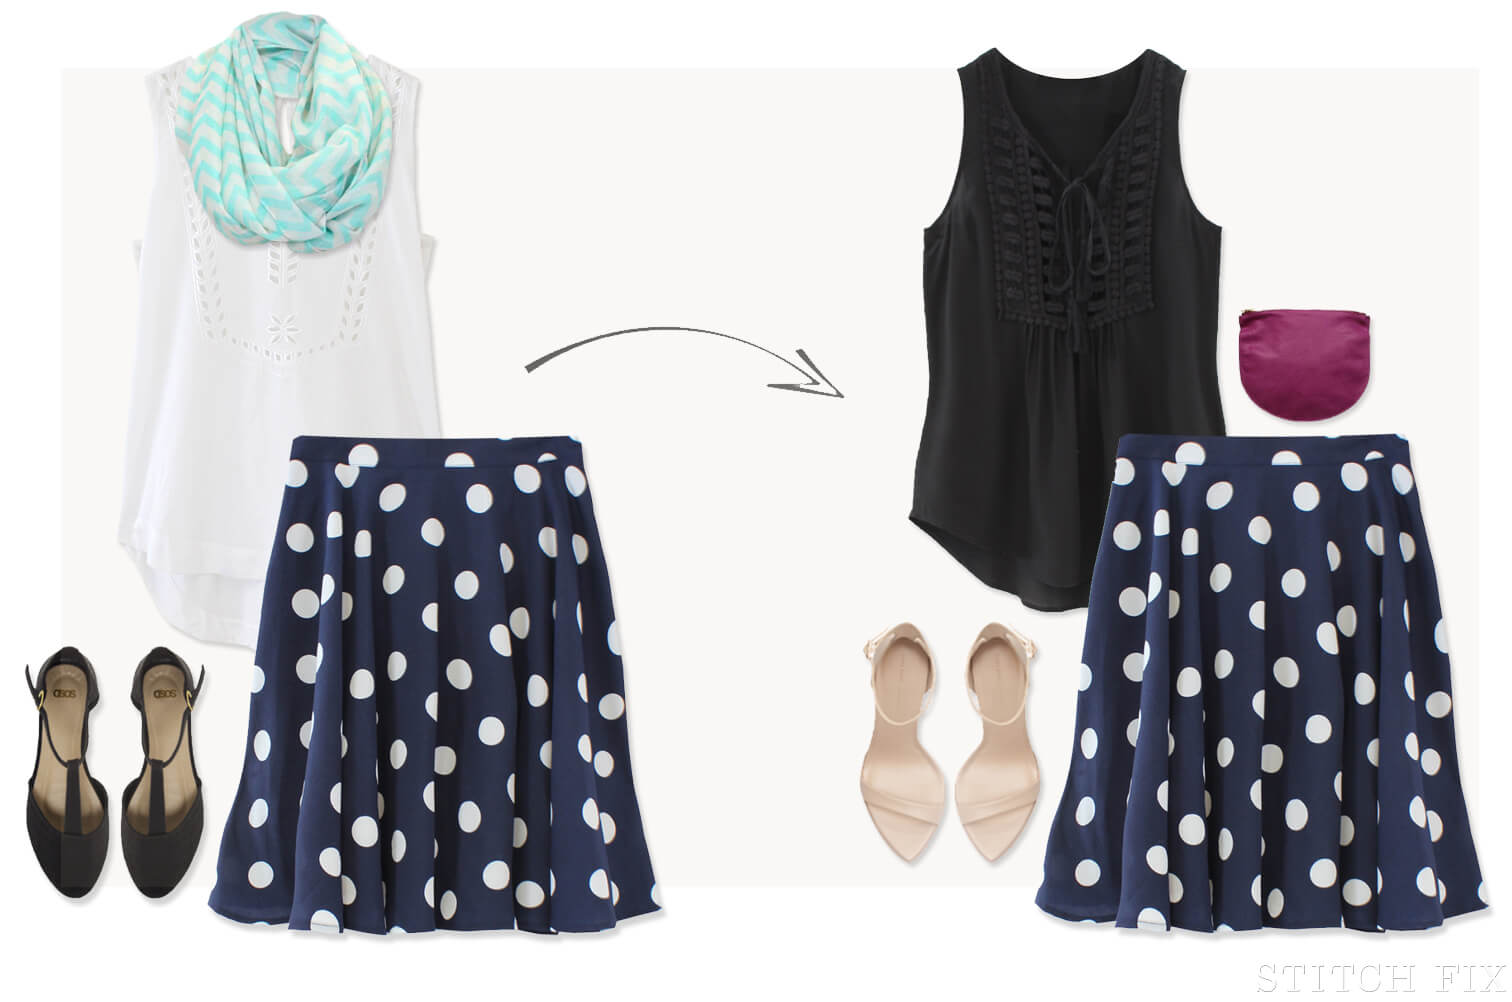 Printed Bottoms, multiple ways to wear. The Skirt